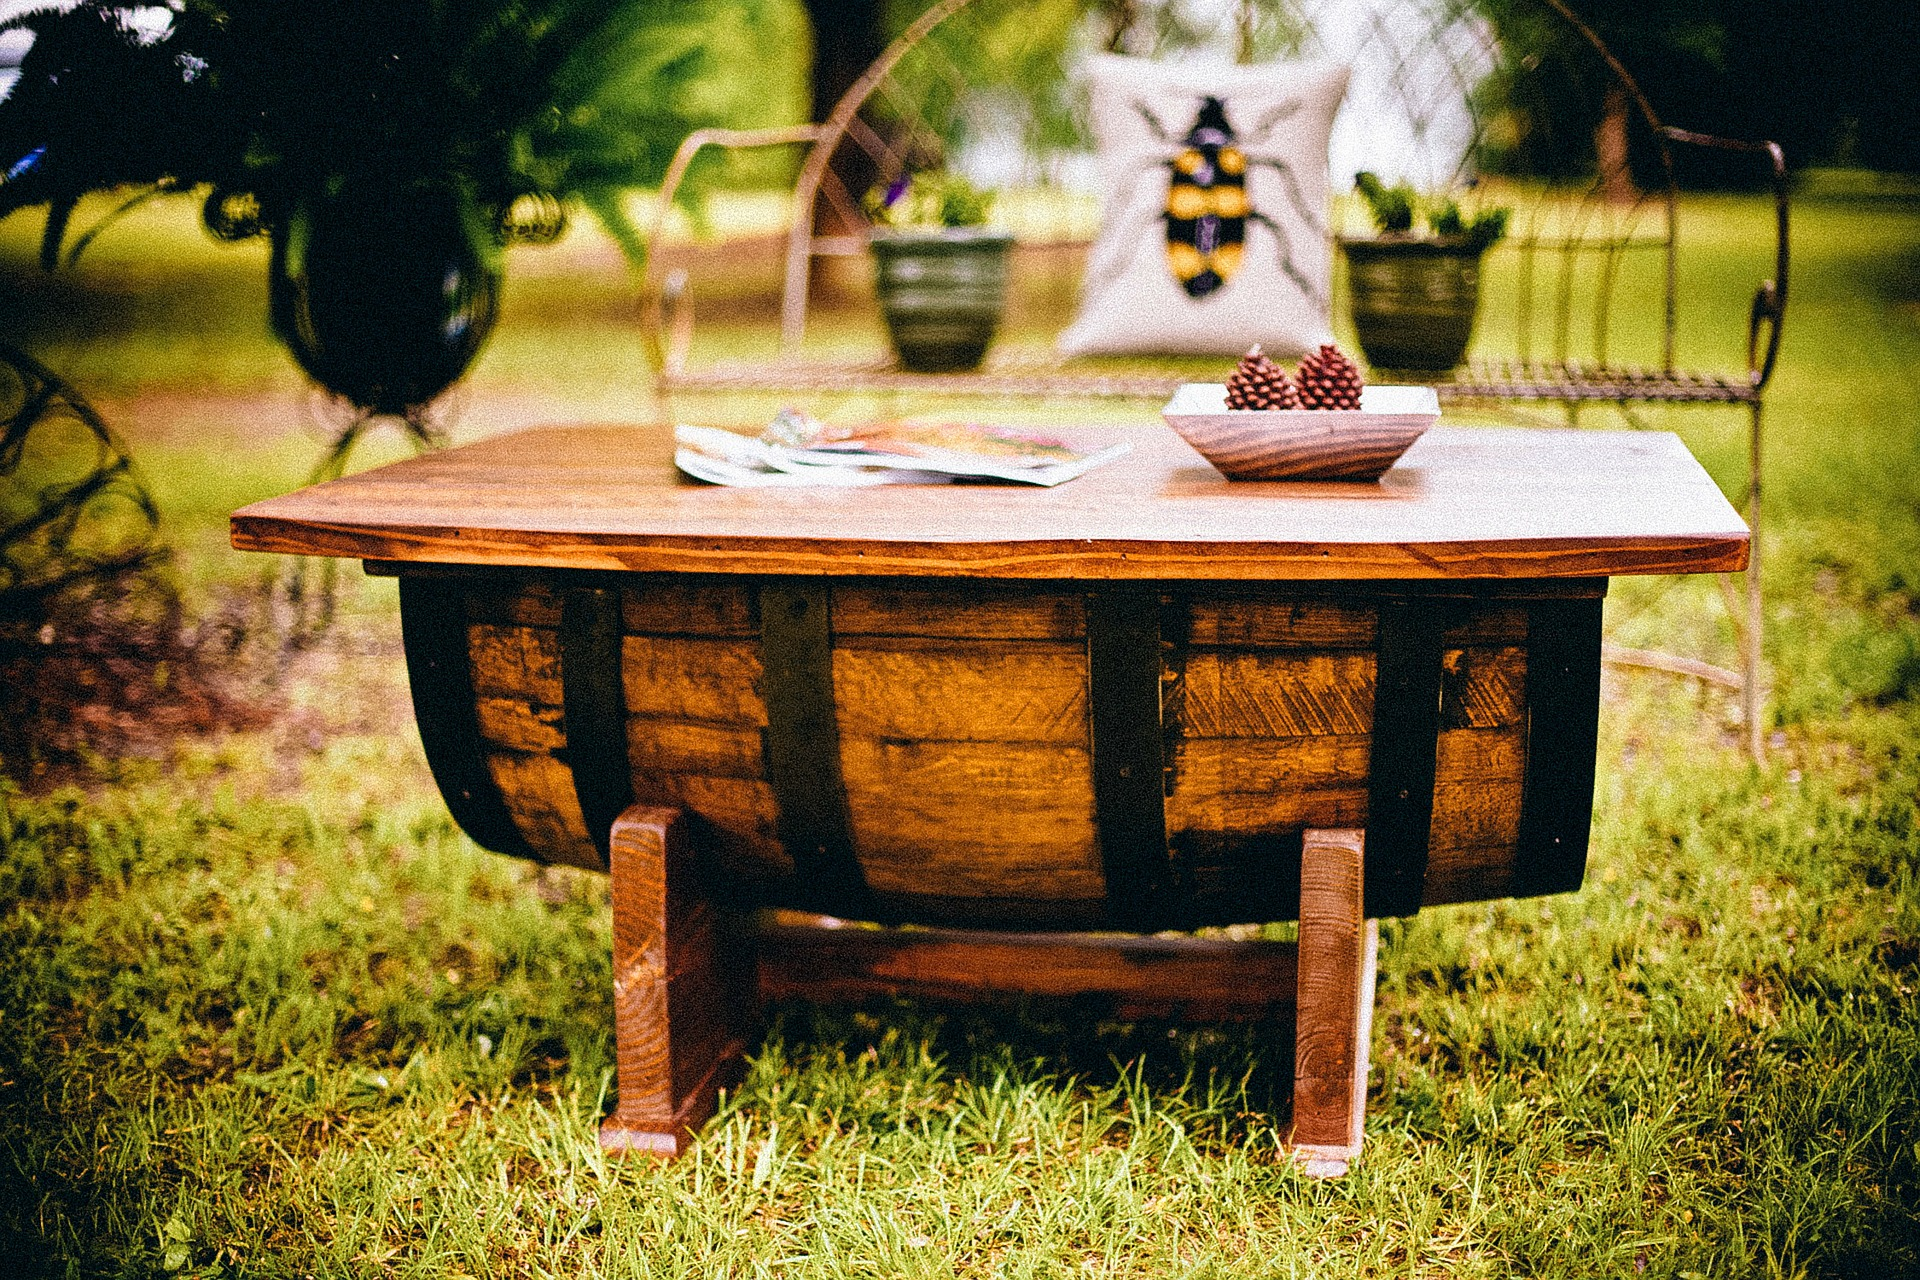 Upcycling garden furniture in 2020.